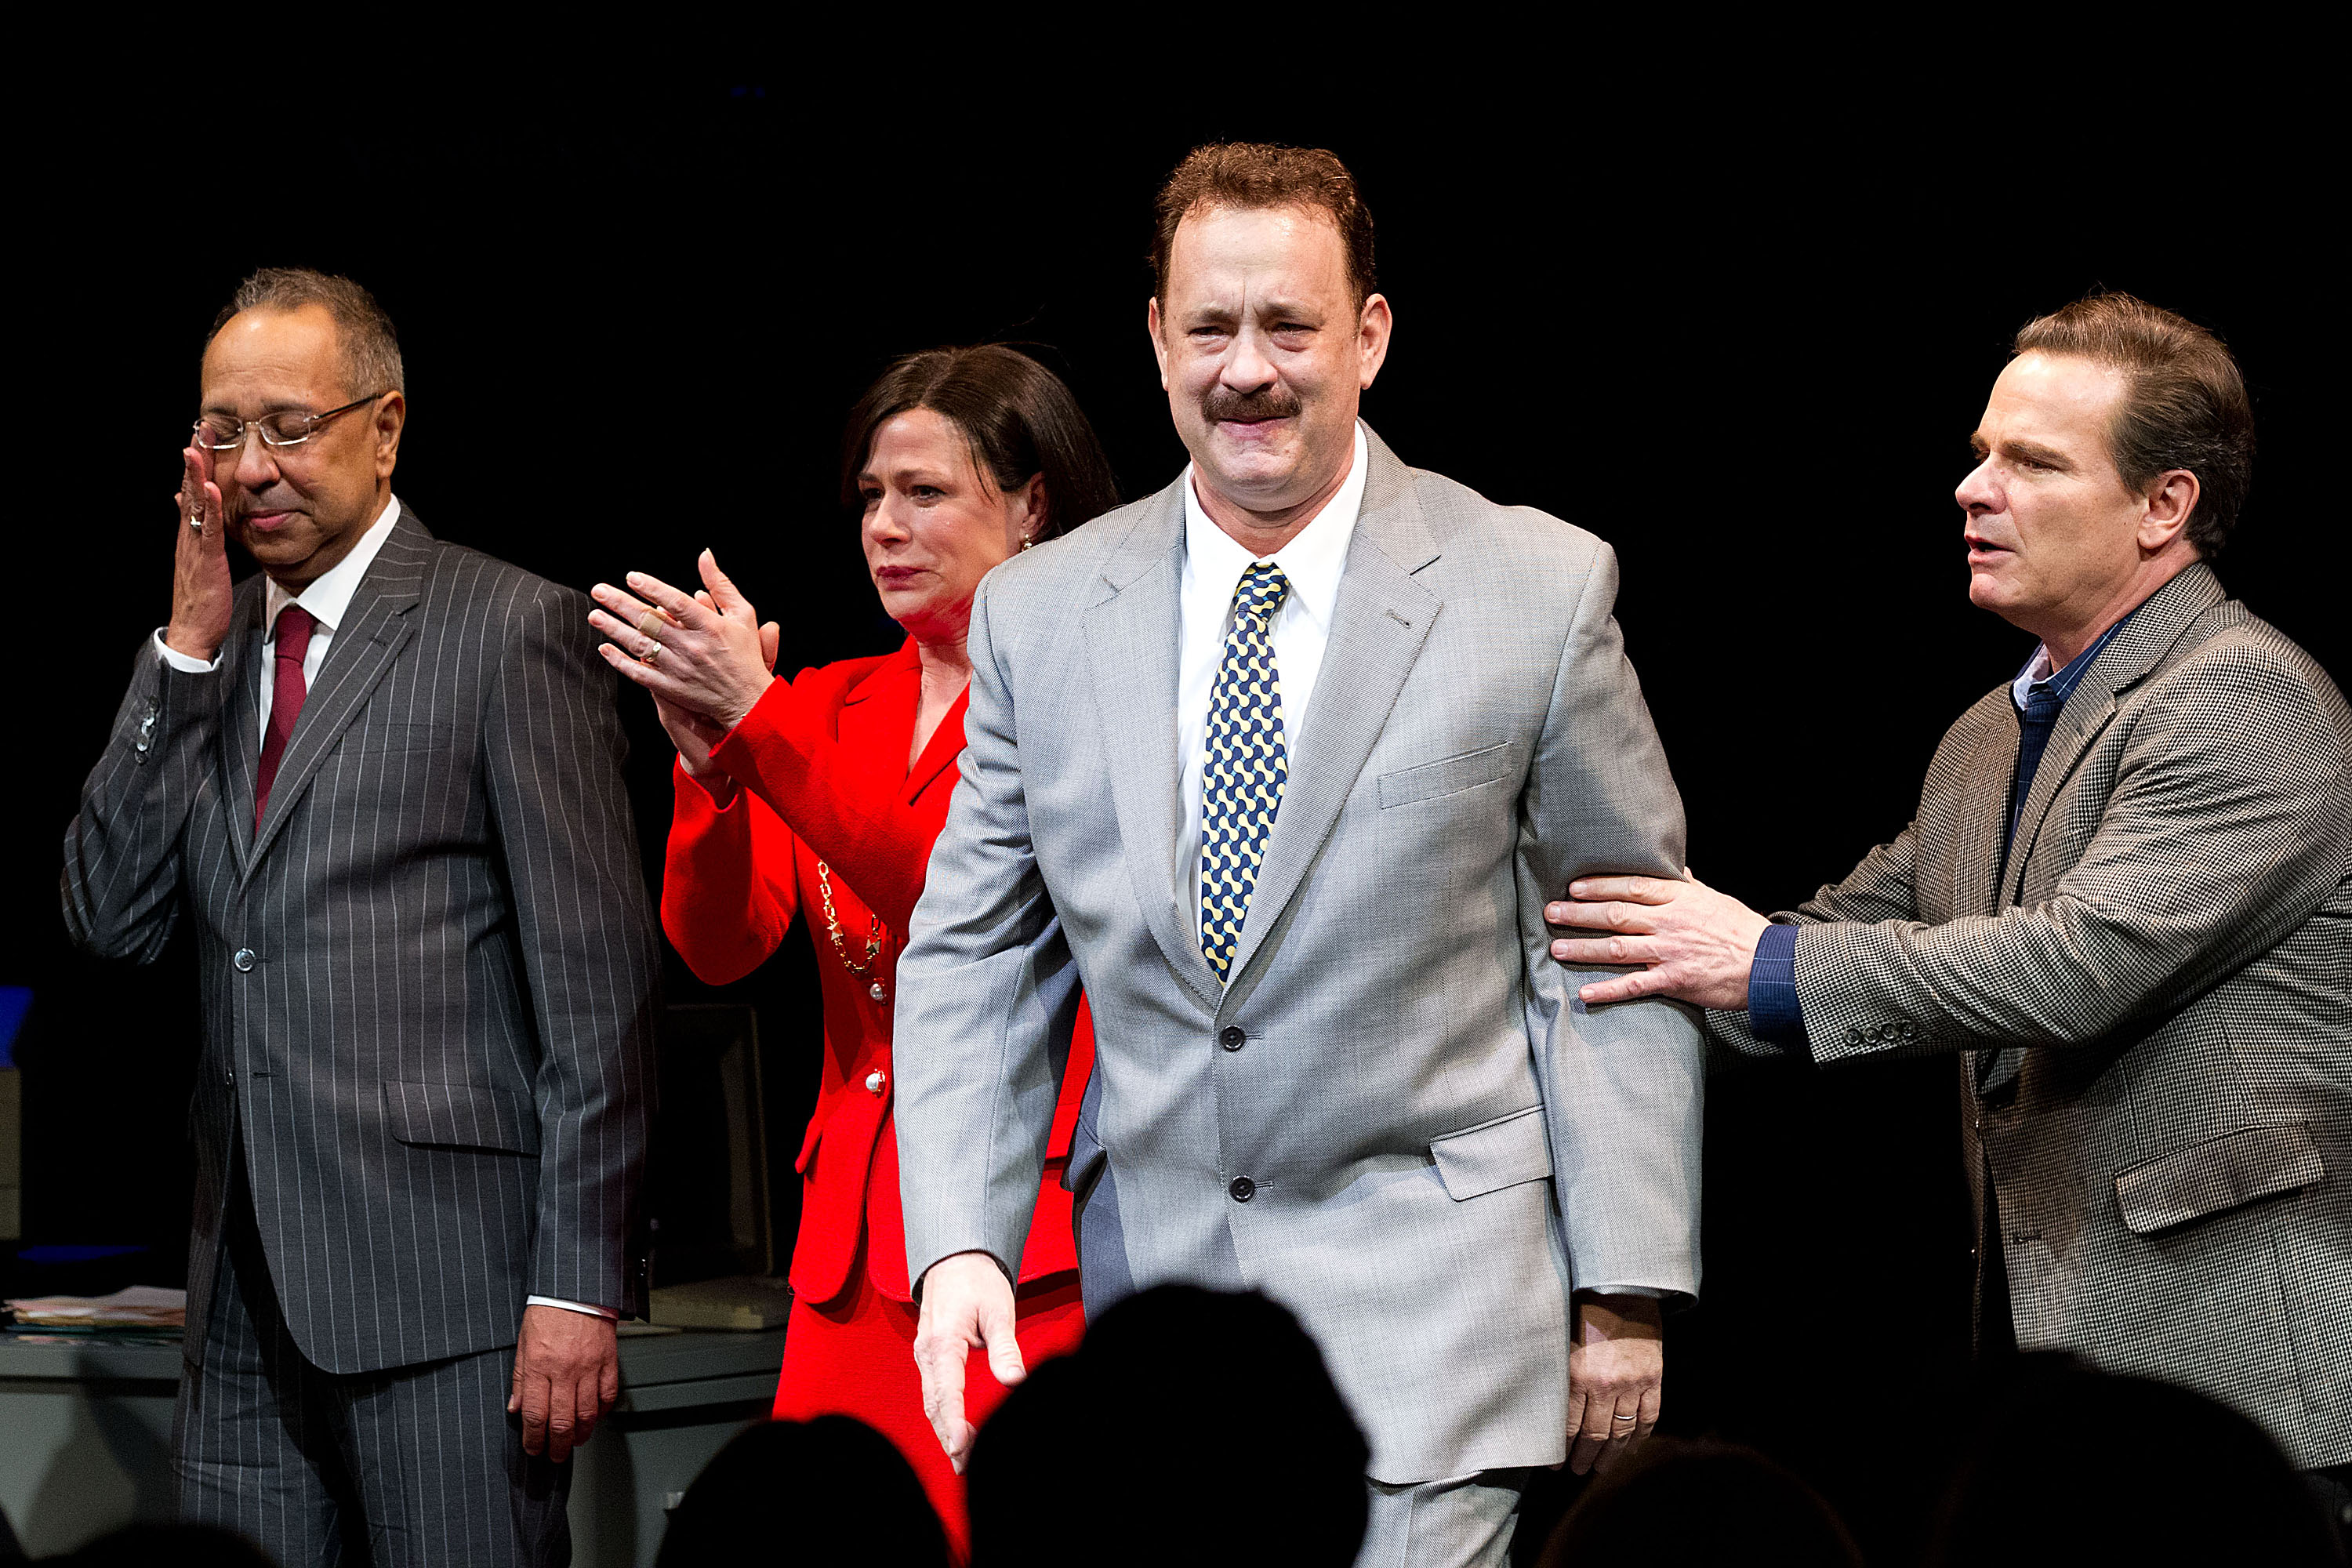 Tom Hanks finally added a Broadway role to his impressive resume when he played Mike McAlary in the 2013 original play <i>Lucky Guy</i>.